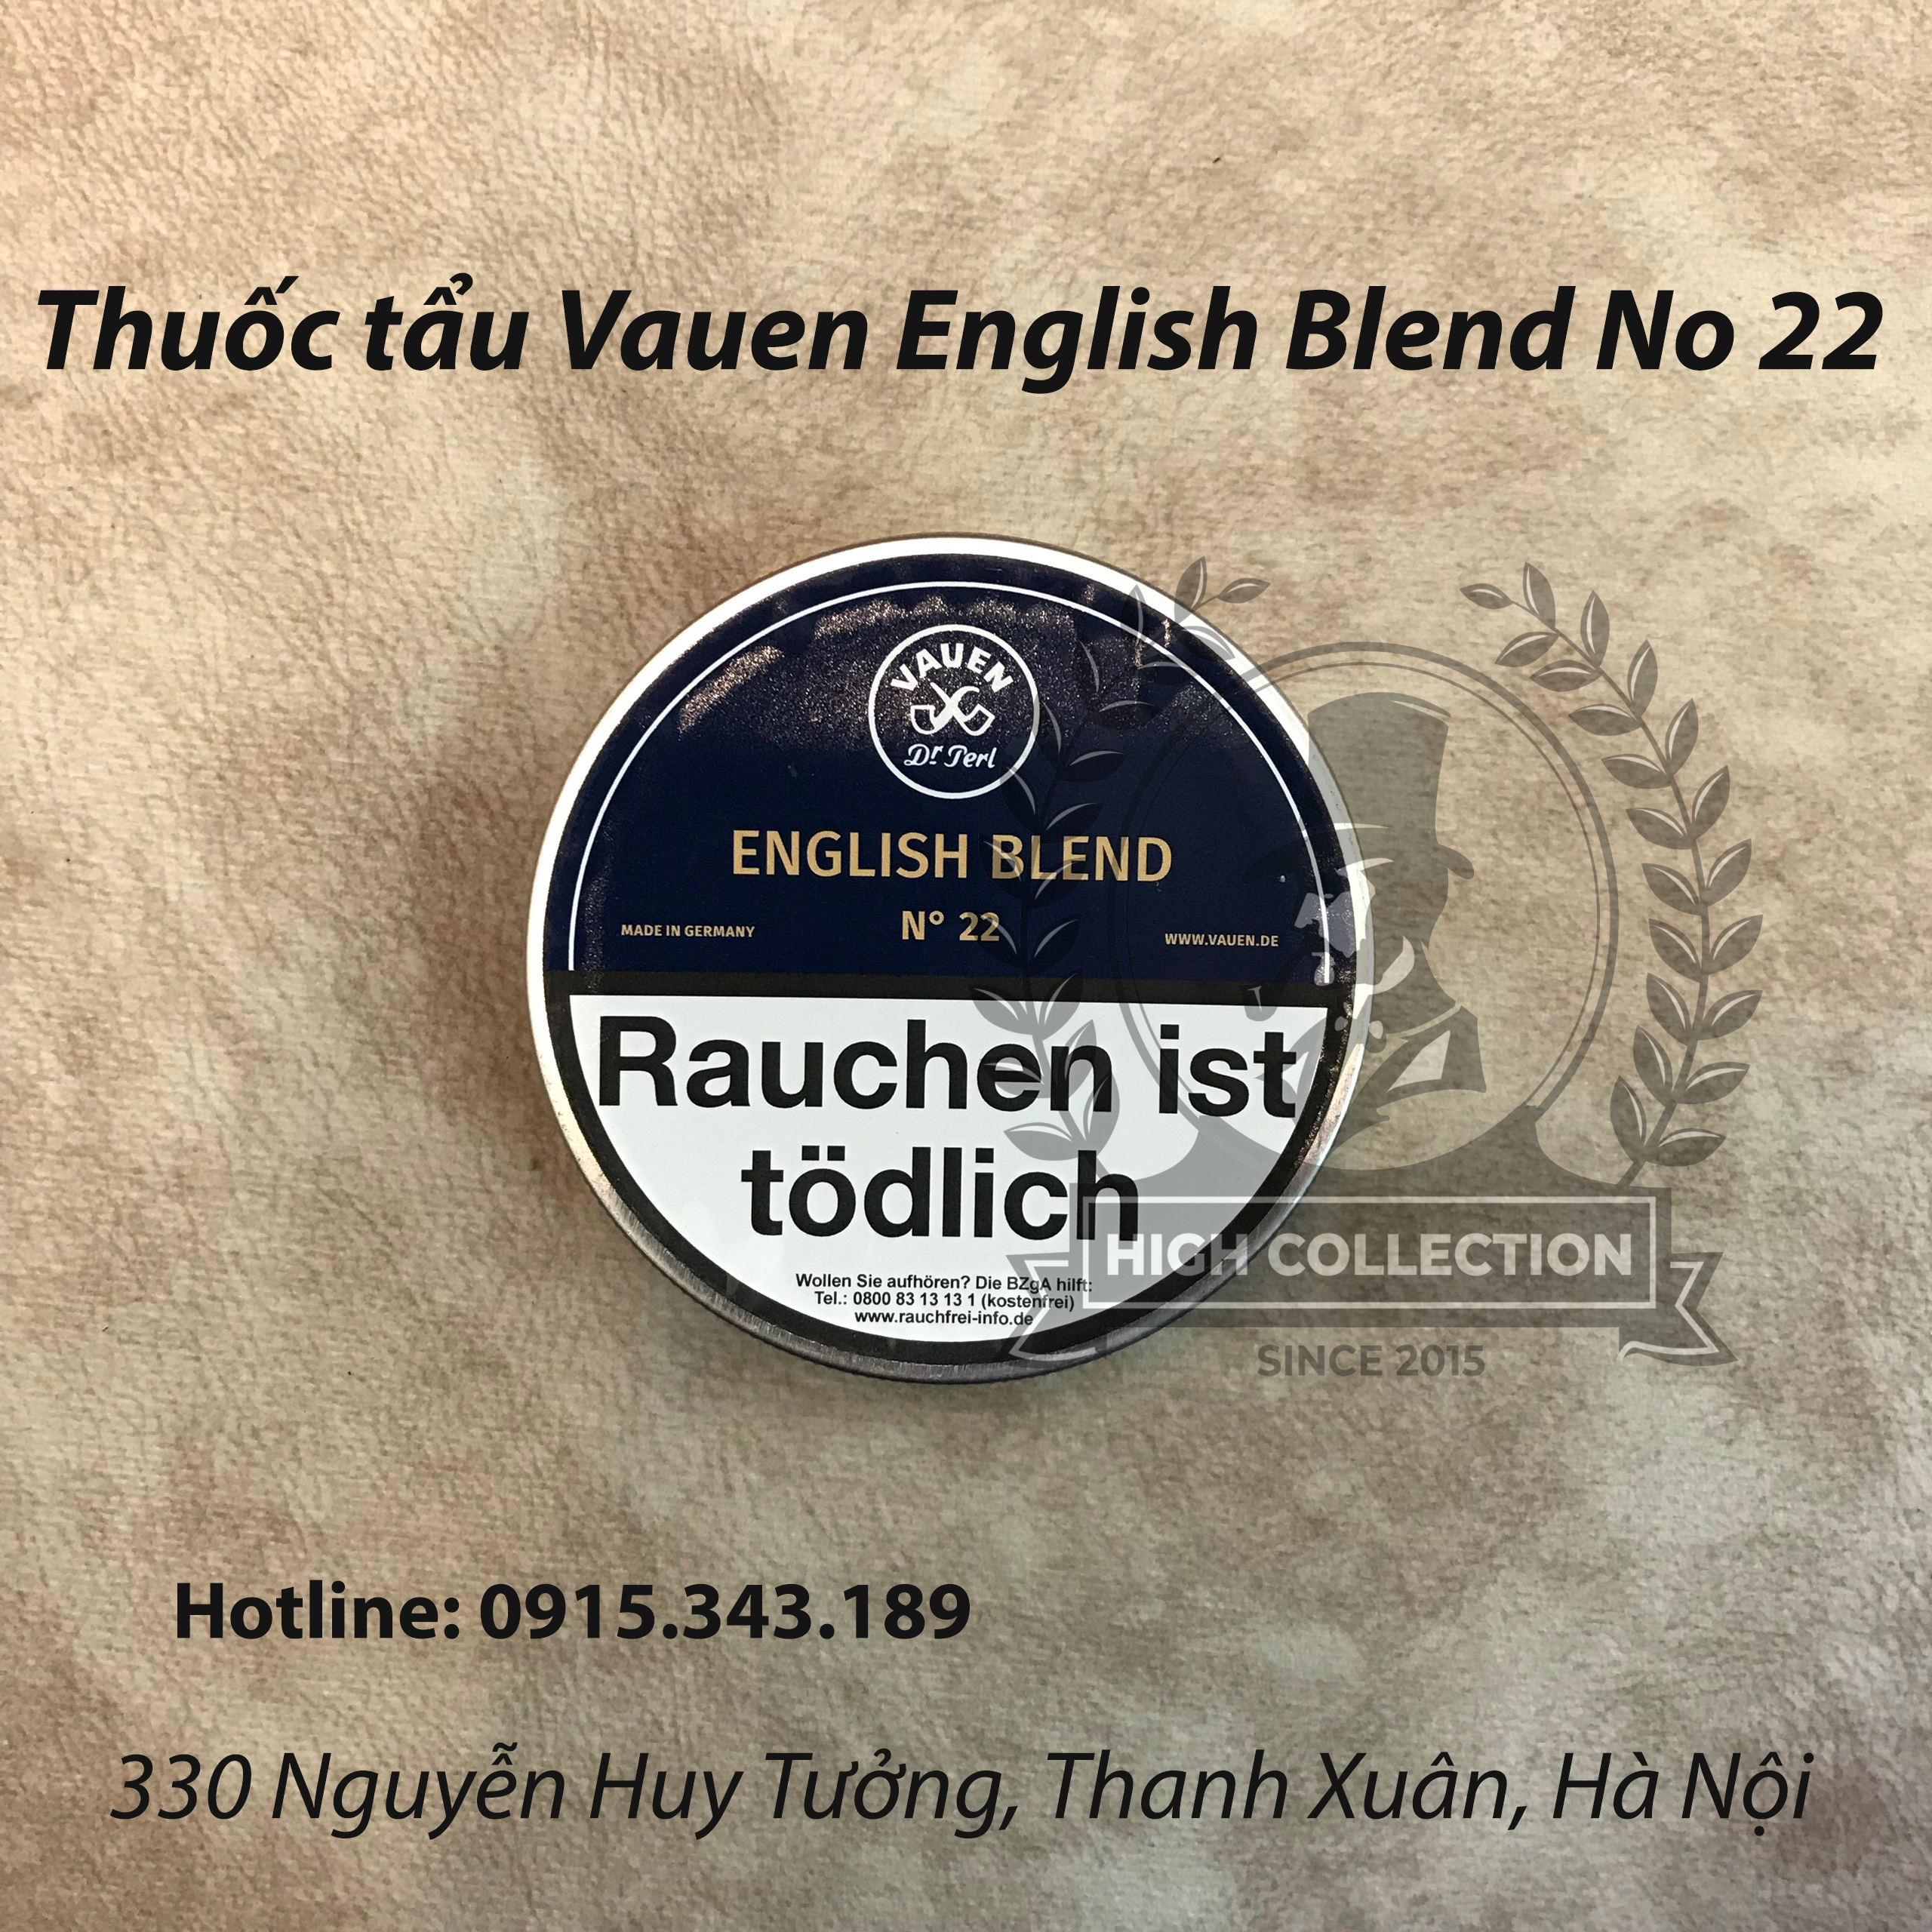 Thuốc tẩu Vauen English Blend No 22